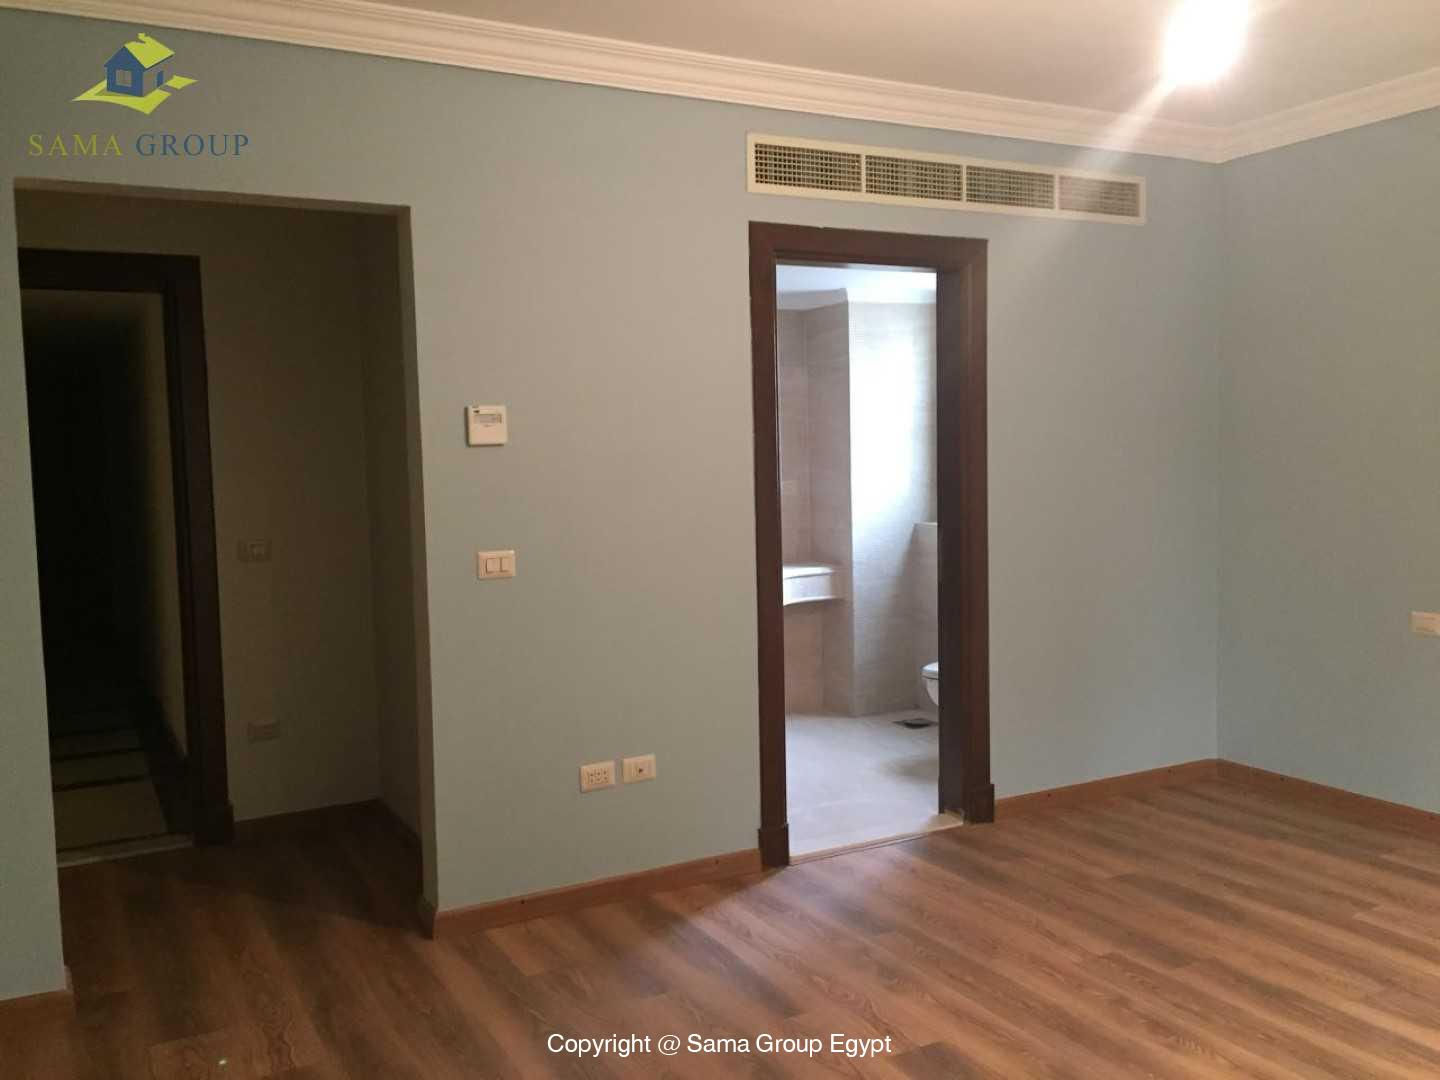 Apartment For Sale In Maadi Sarayat,Unfurnished,Apartment NO #29